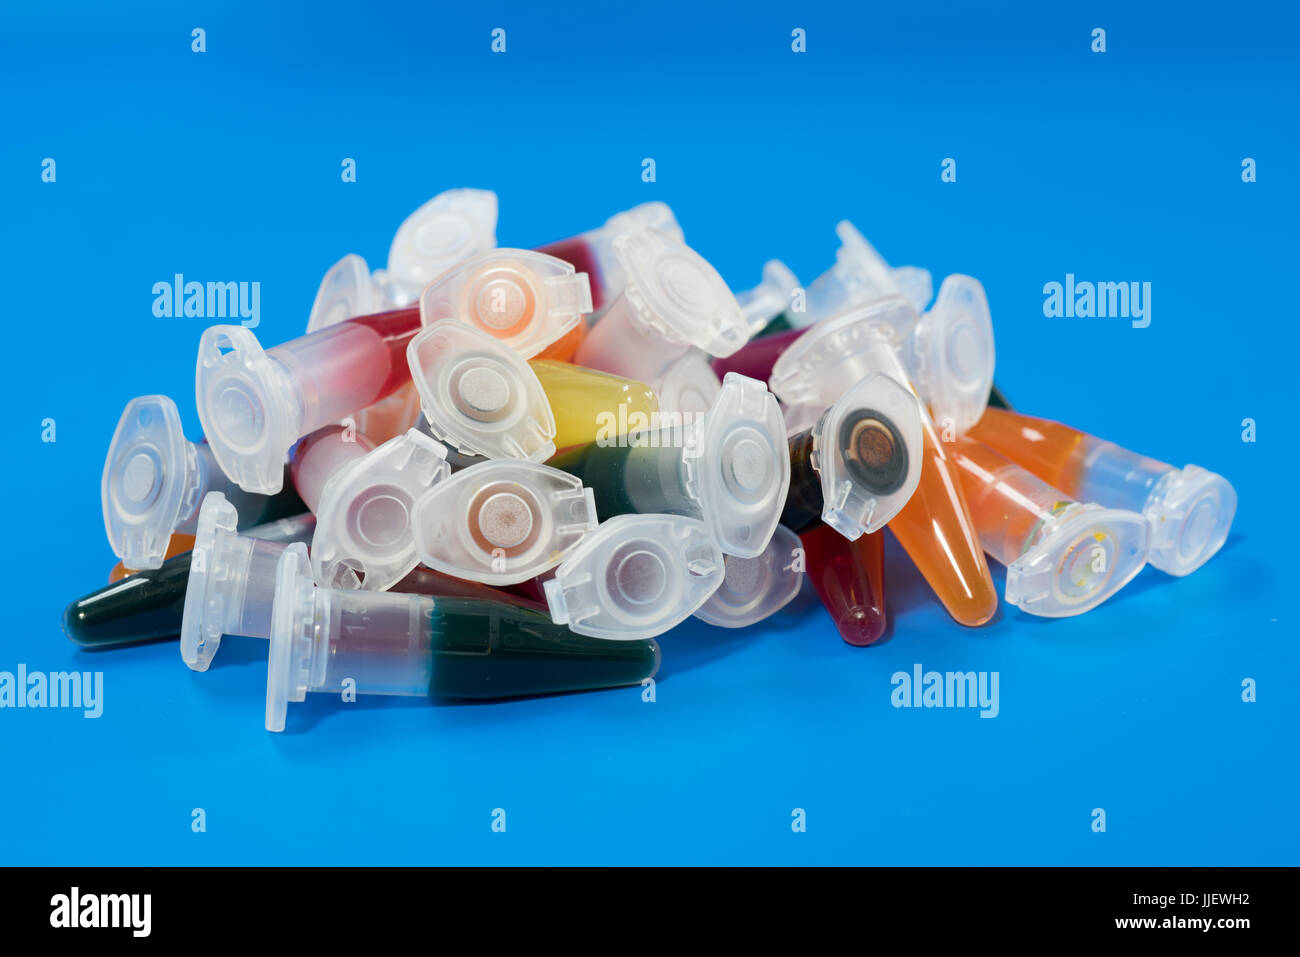 micro centrifuge test tubes with bio samples for microbial testing - Stock Image